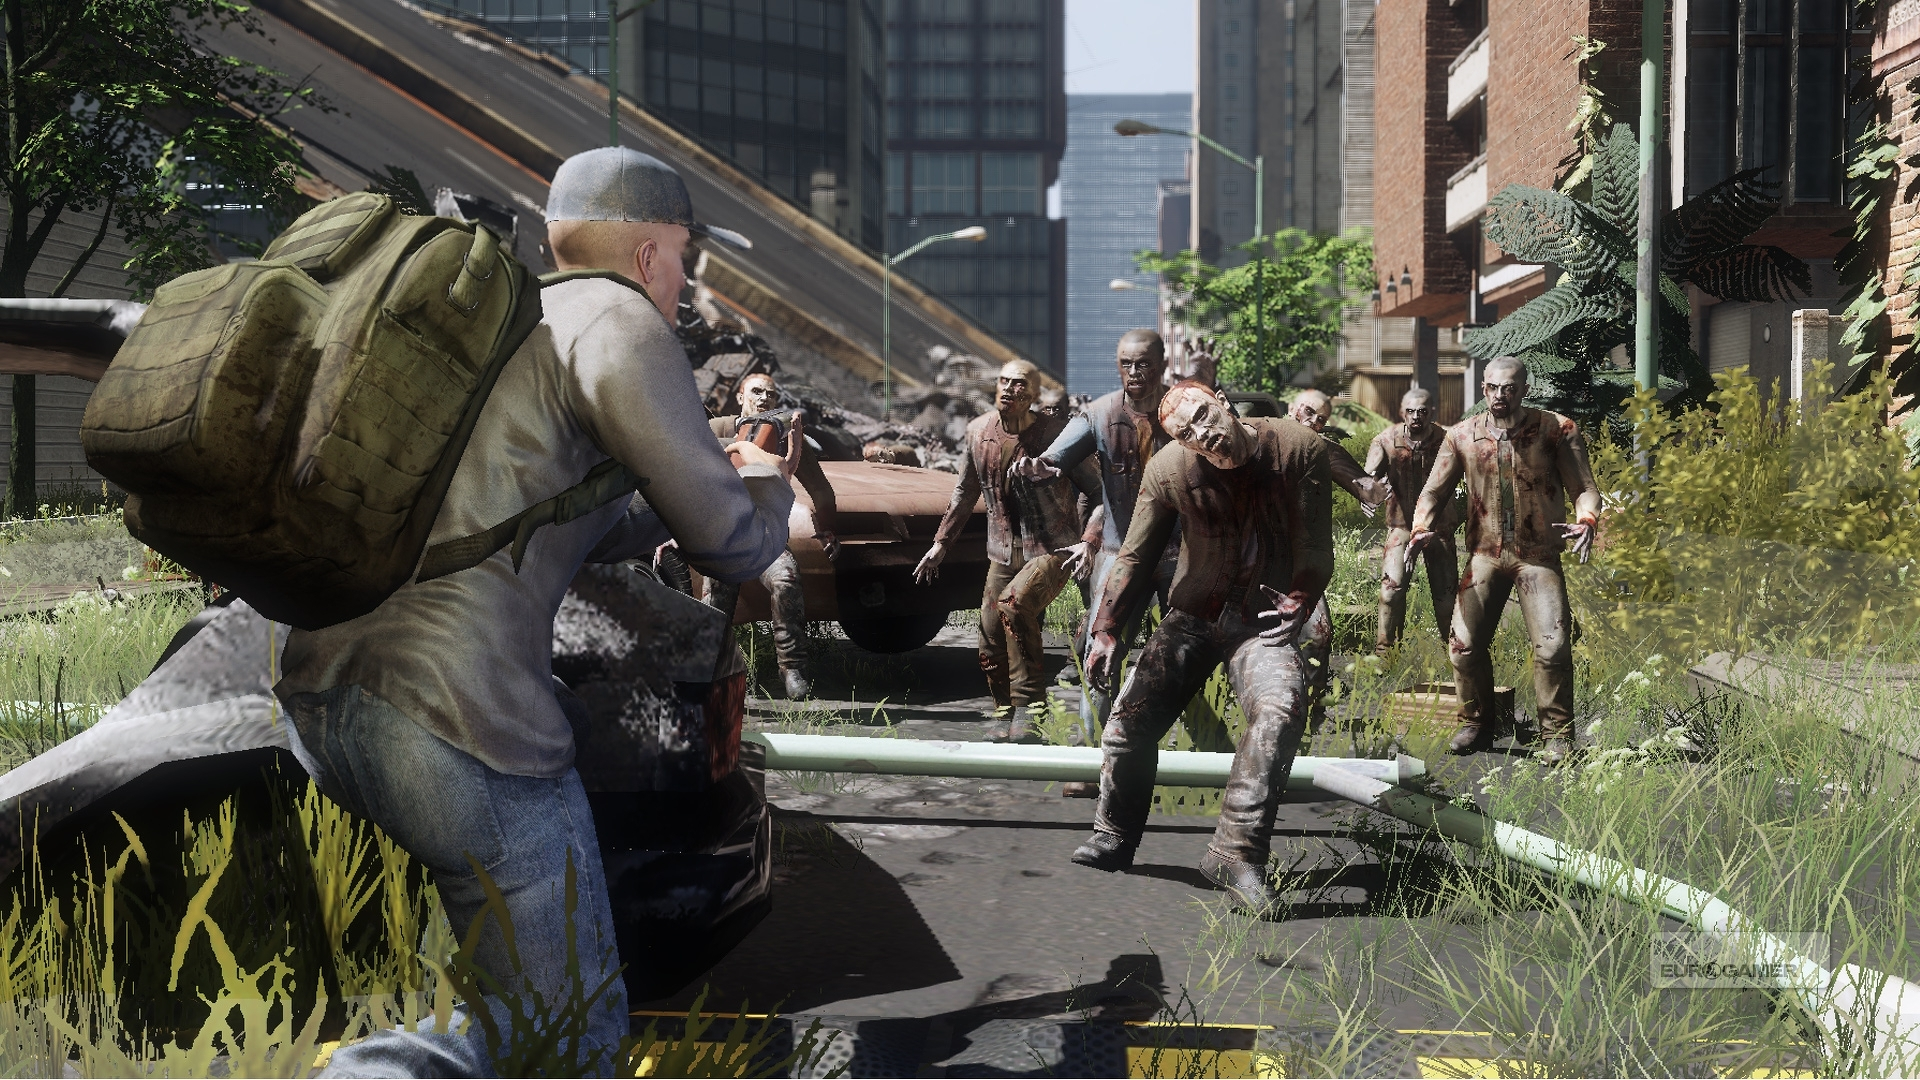 Image du jeu vidéo The Walking Dead : Survival Instinct